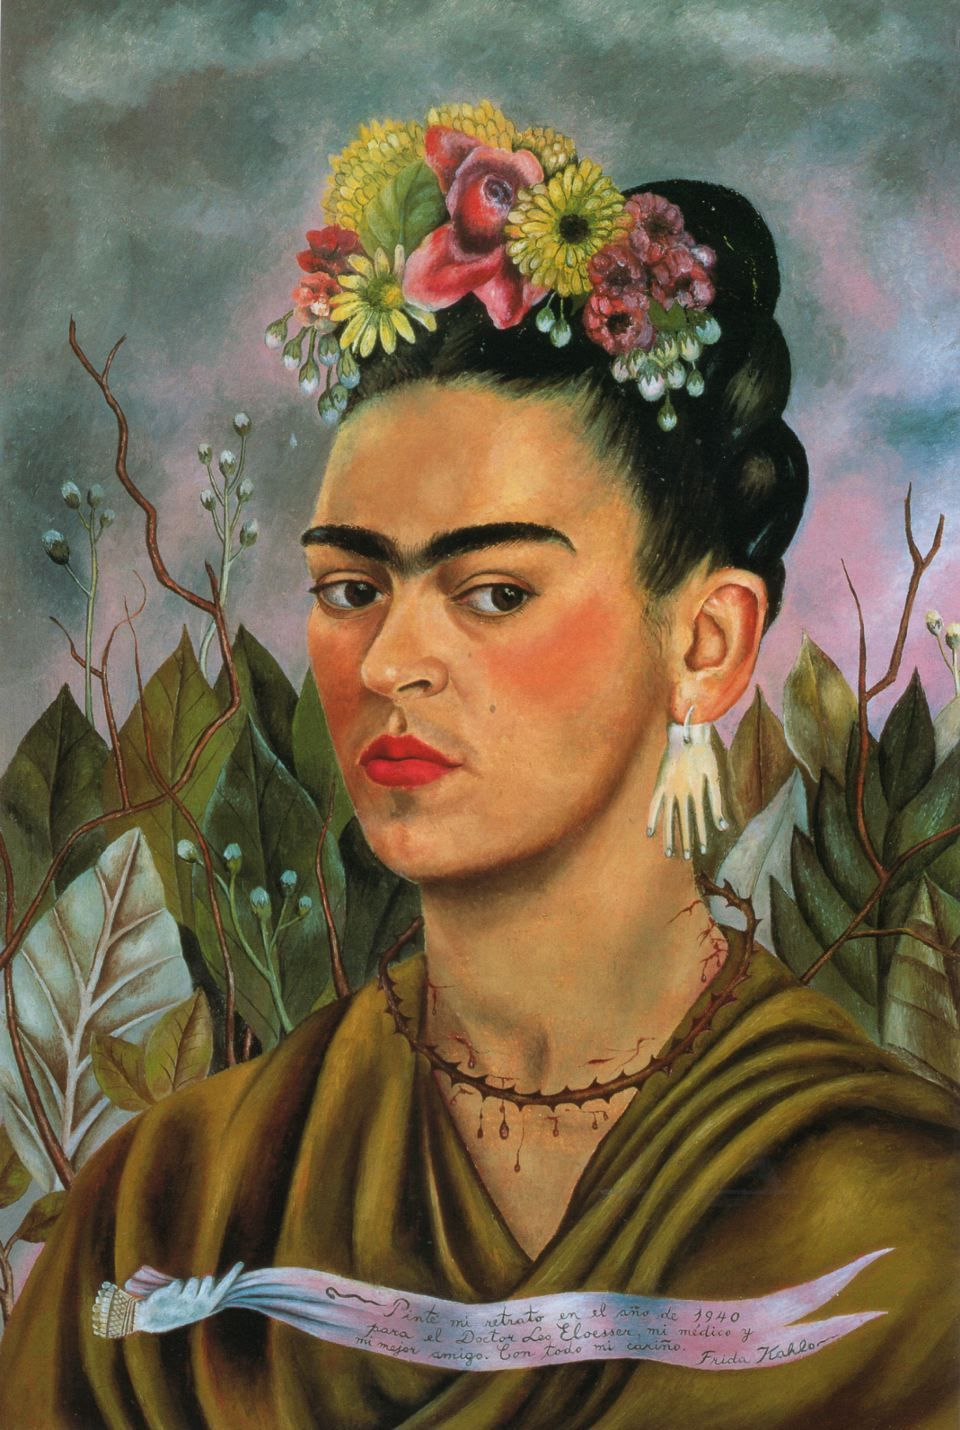 """Frida Kahlo, """"Self-Portrait Dedicated to Dr. Eloesser,"""" 1940. The thorn necklace is related to the Christian Passion and innocent suffering. The earrings are from Pablo Picasso.  The banderole says: """"I painted my portrait in the year 1940 for Doctor Leo Eloesser, my doctor and my best friend. With all my love. Frida Kahlo."""""""